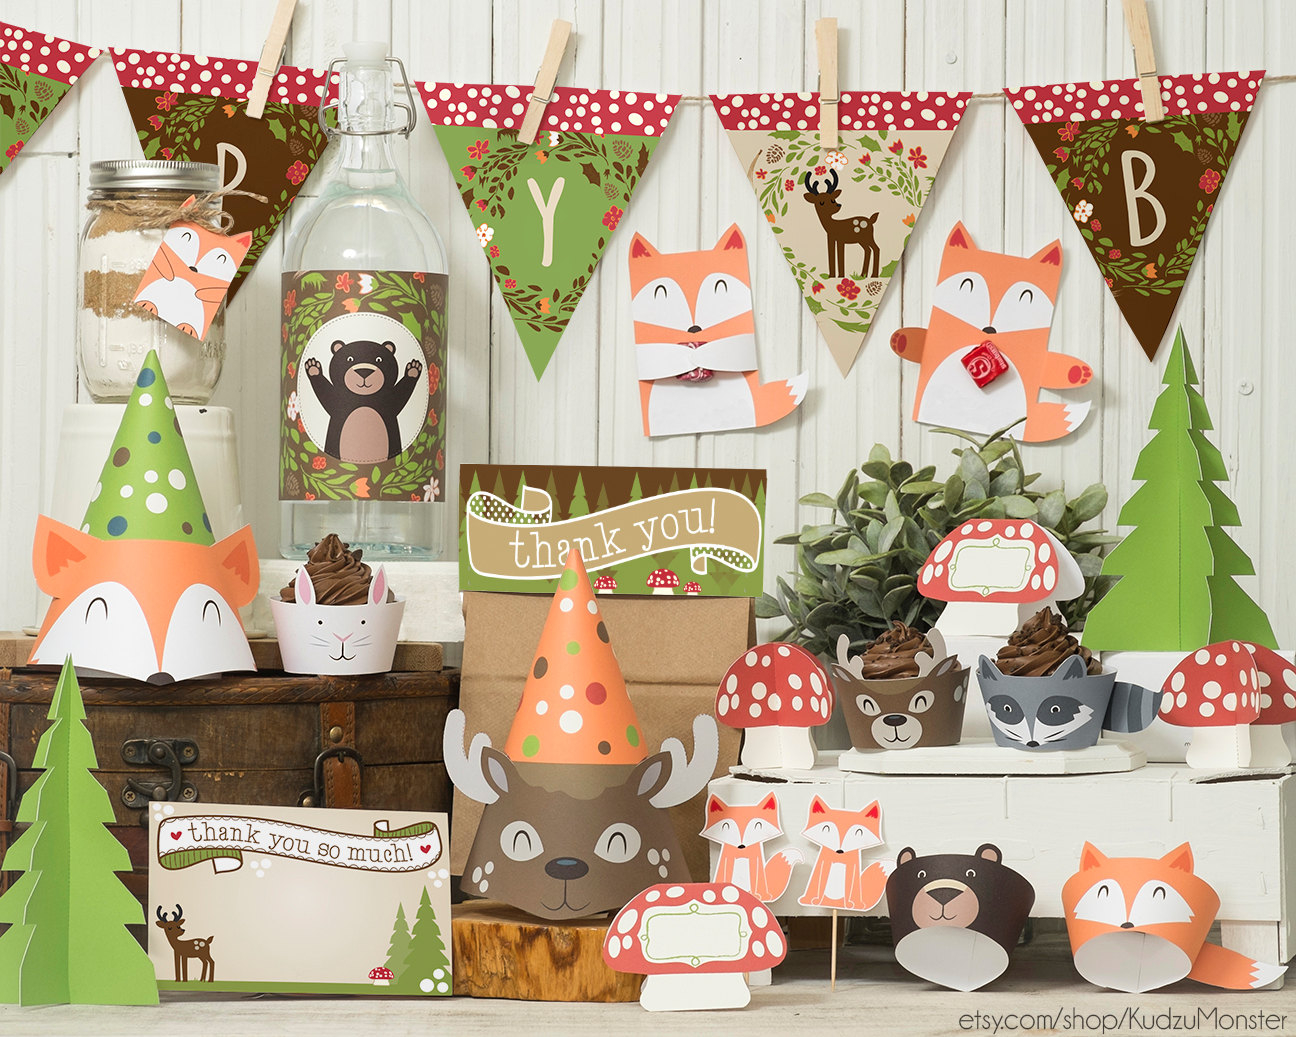 Gender Neutral Woodland Animals Ba Shower Party Supplies inside sizing 1296 X 1037